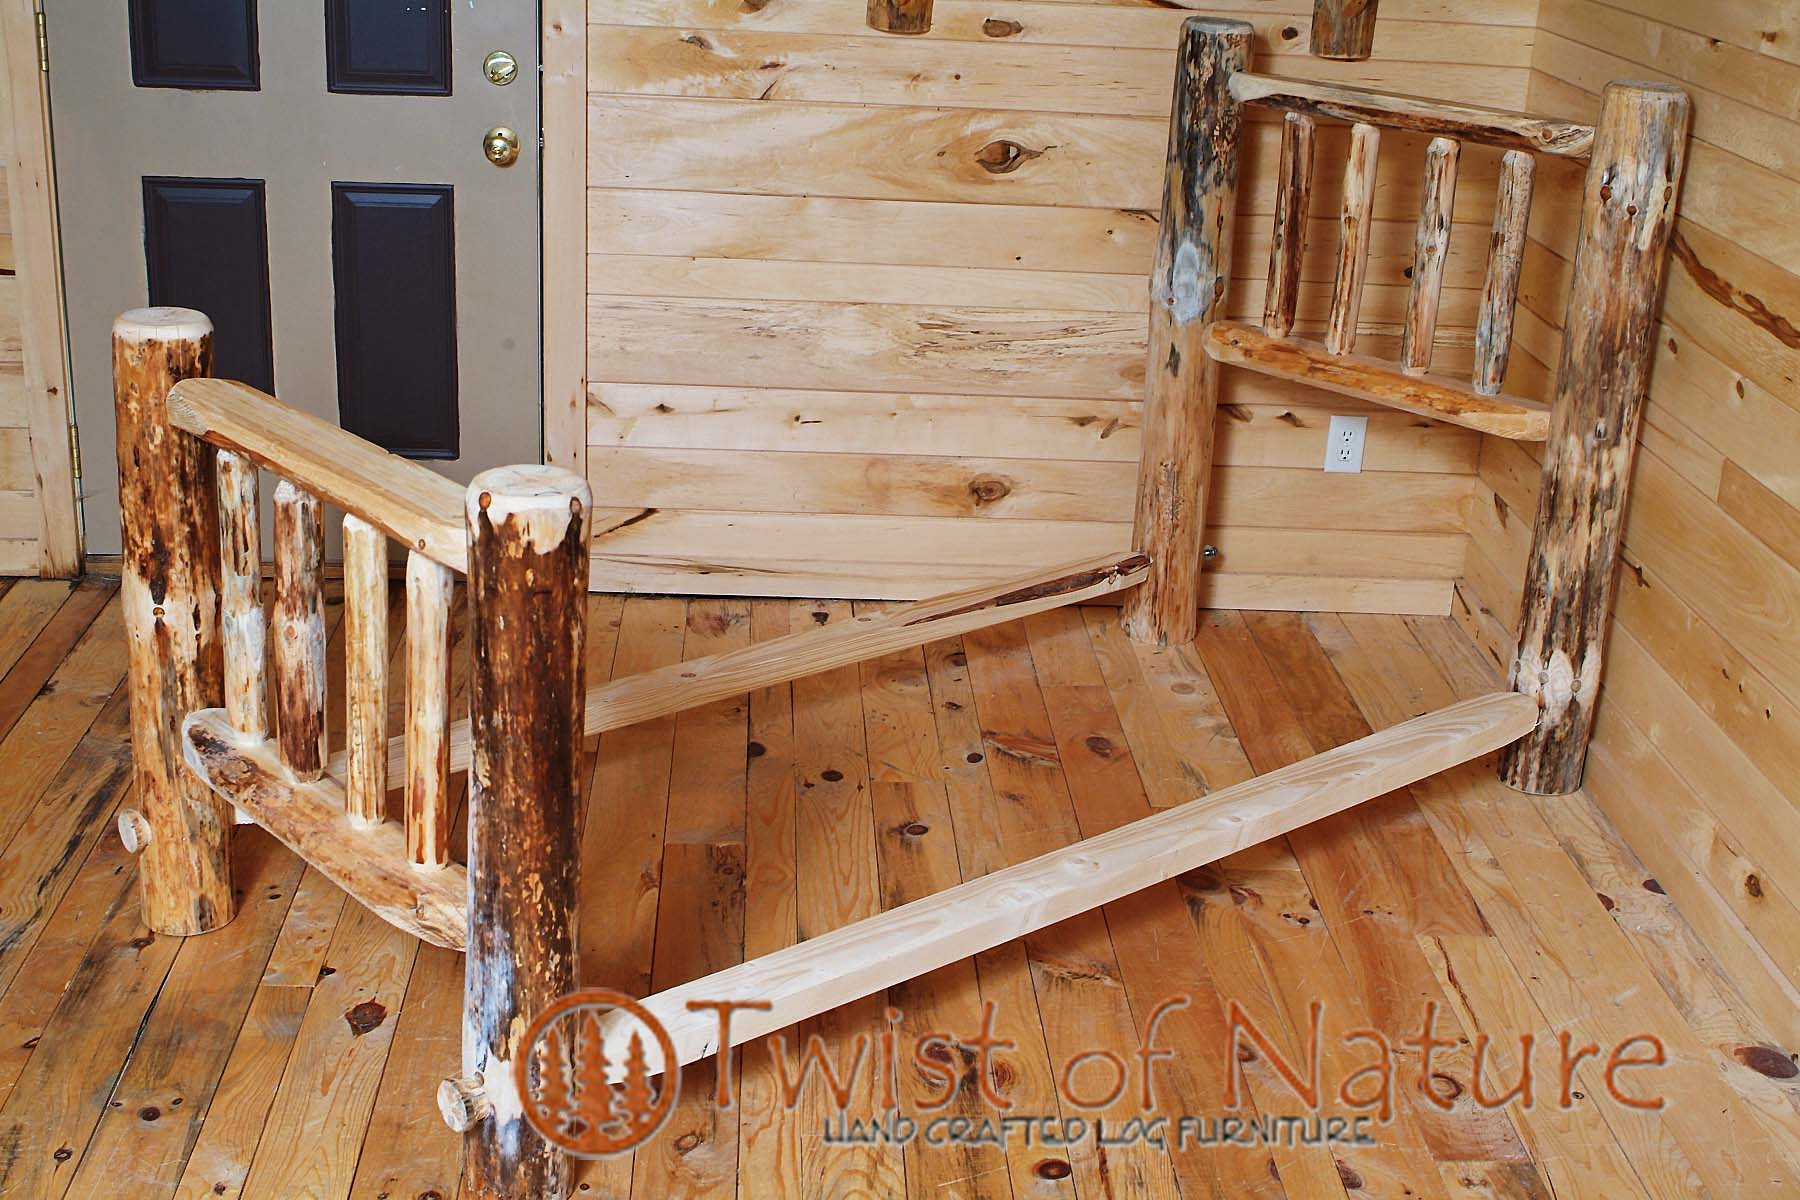 Lakeside Edition Log Bed Frame Kit